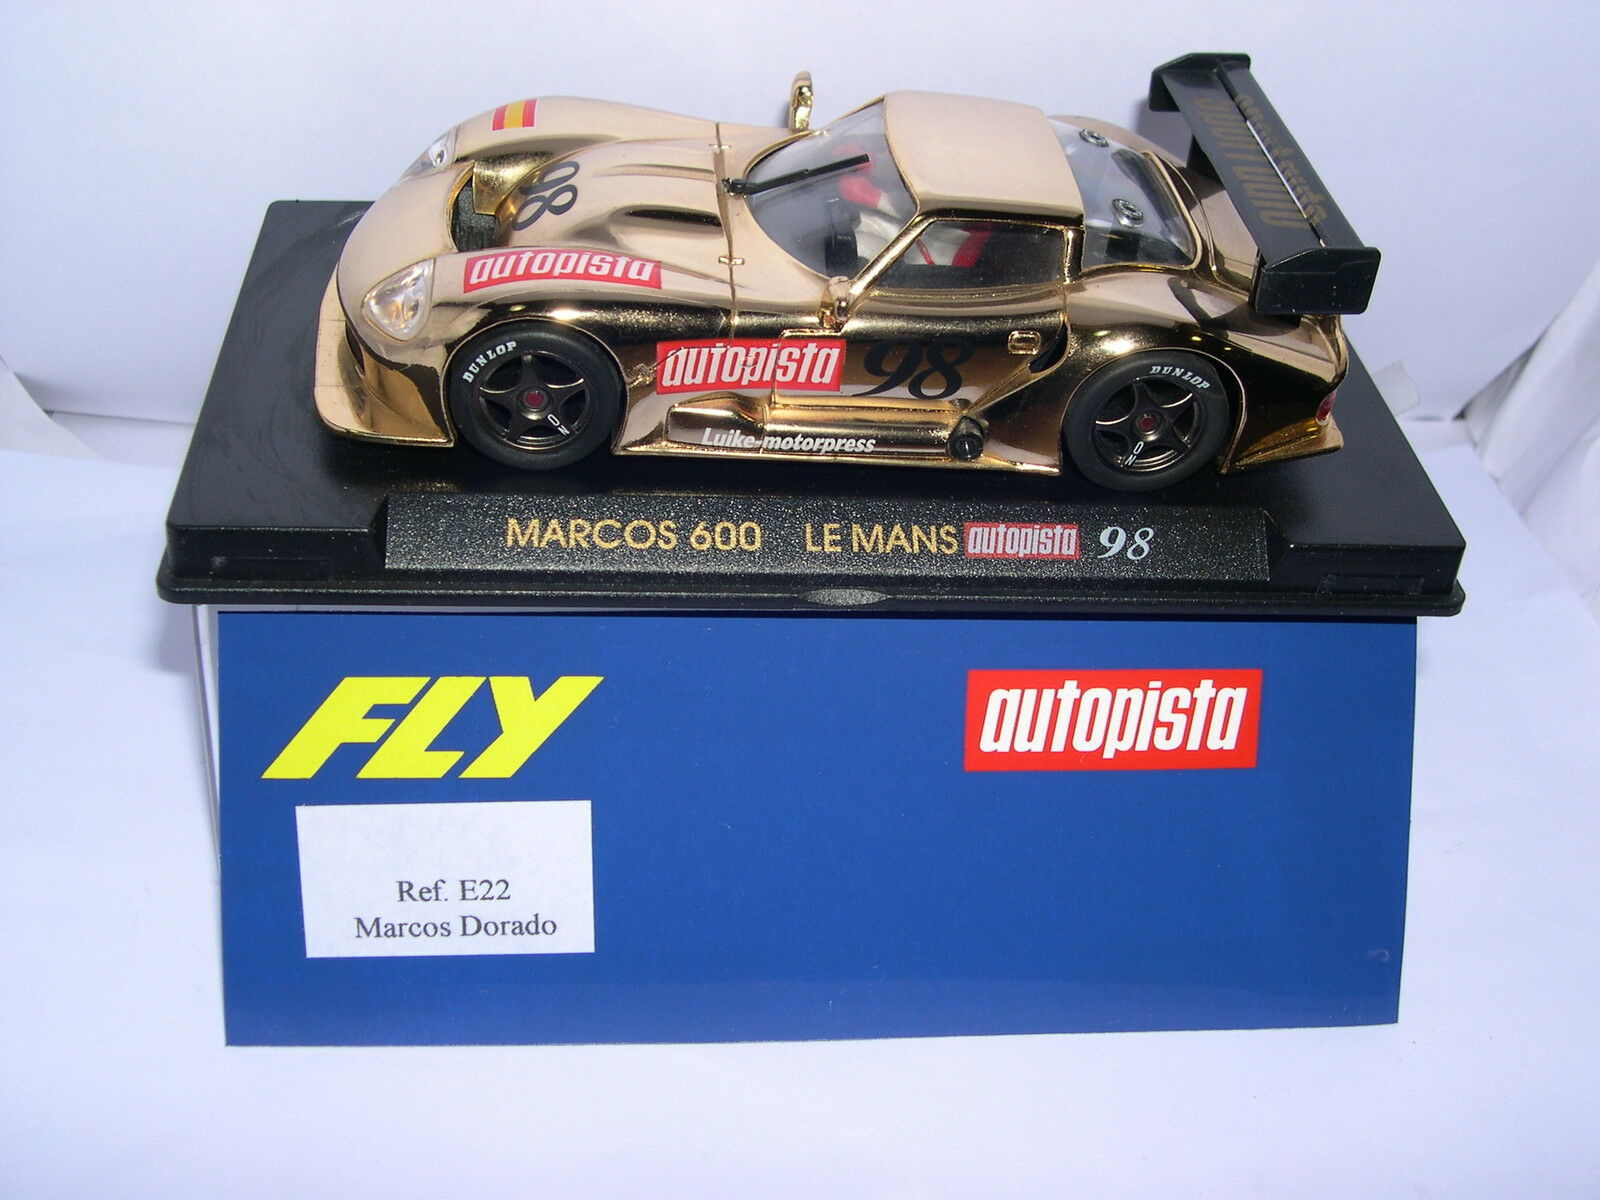 FLY E22 MARCOS 600 LE MANS 98 HIGHWAY LTED. ED. MB